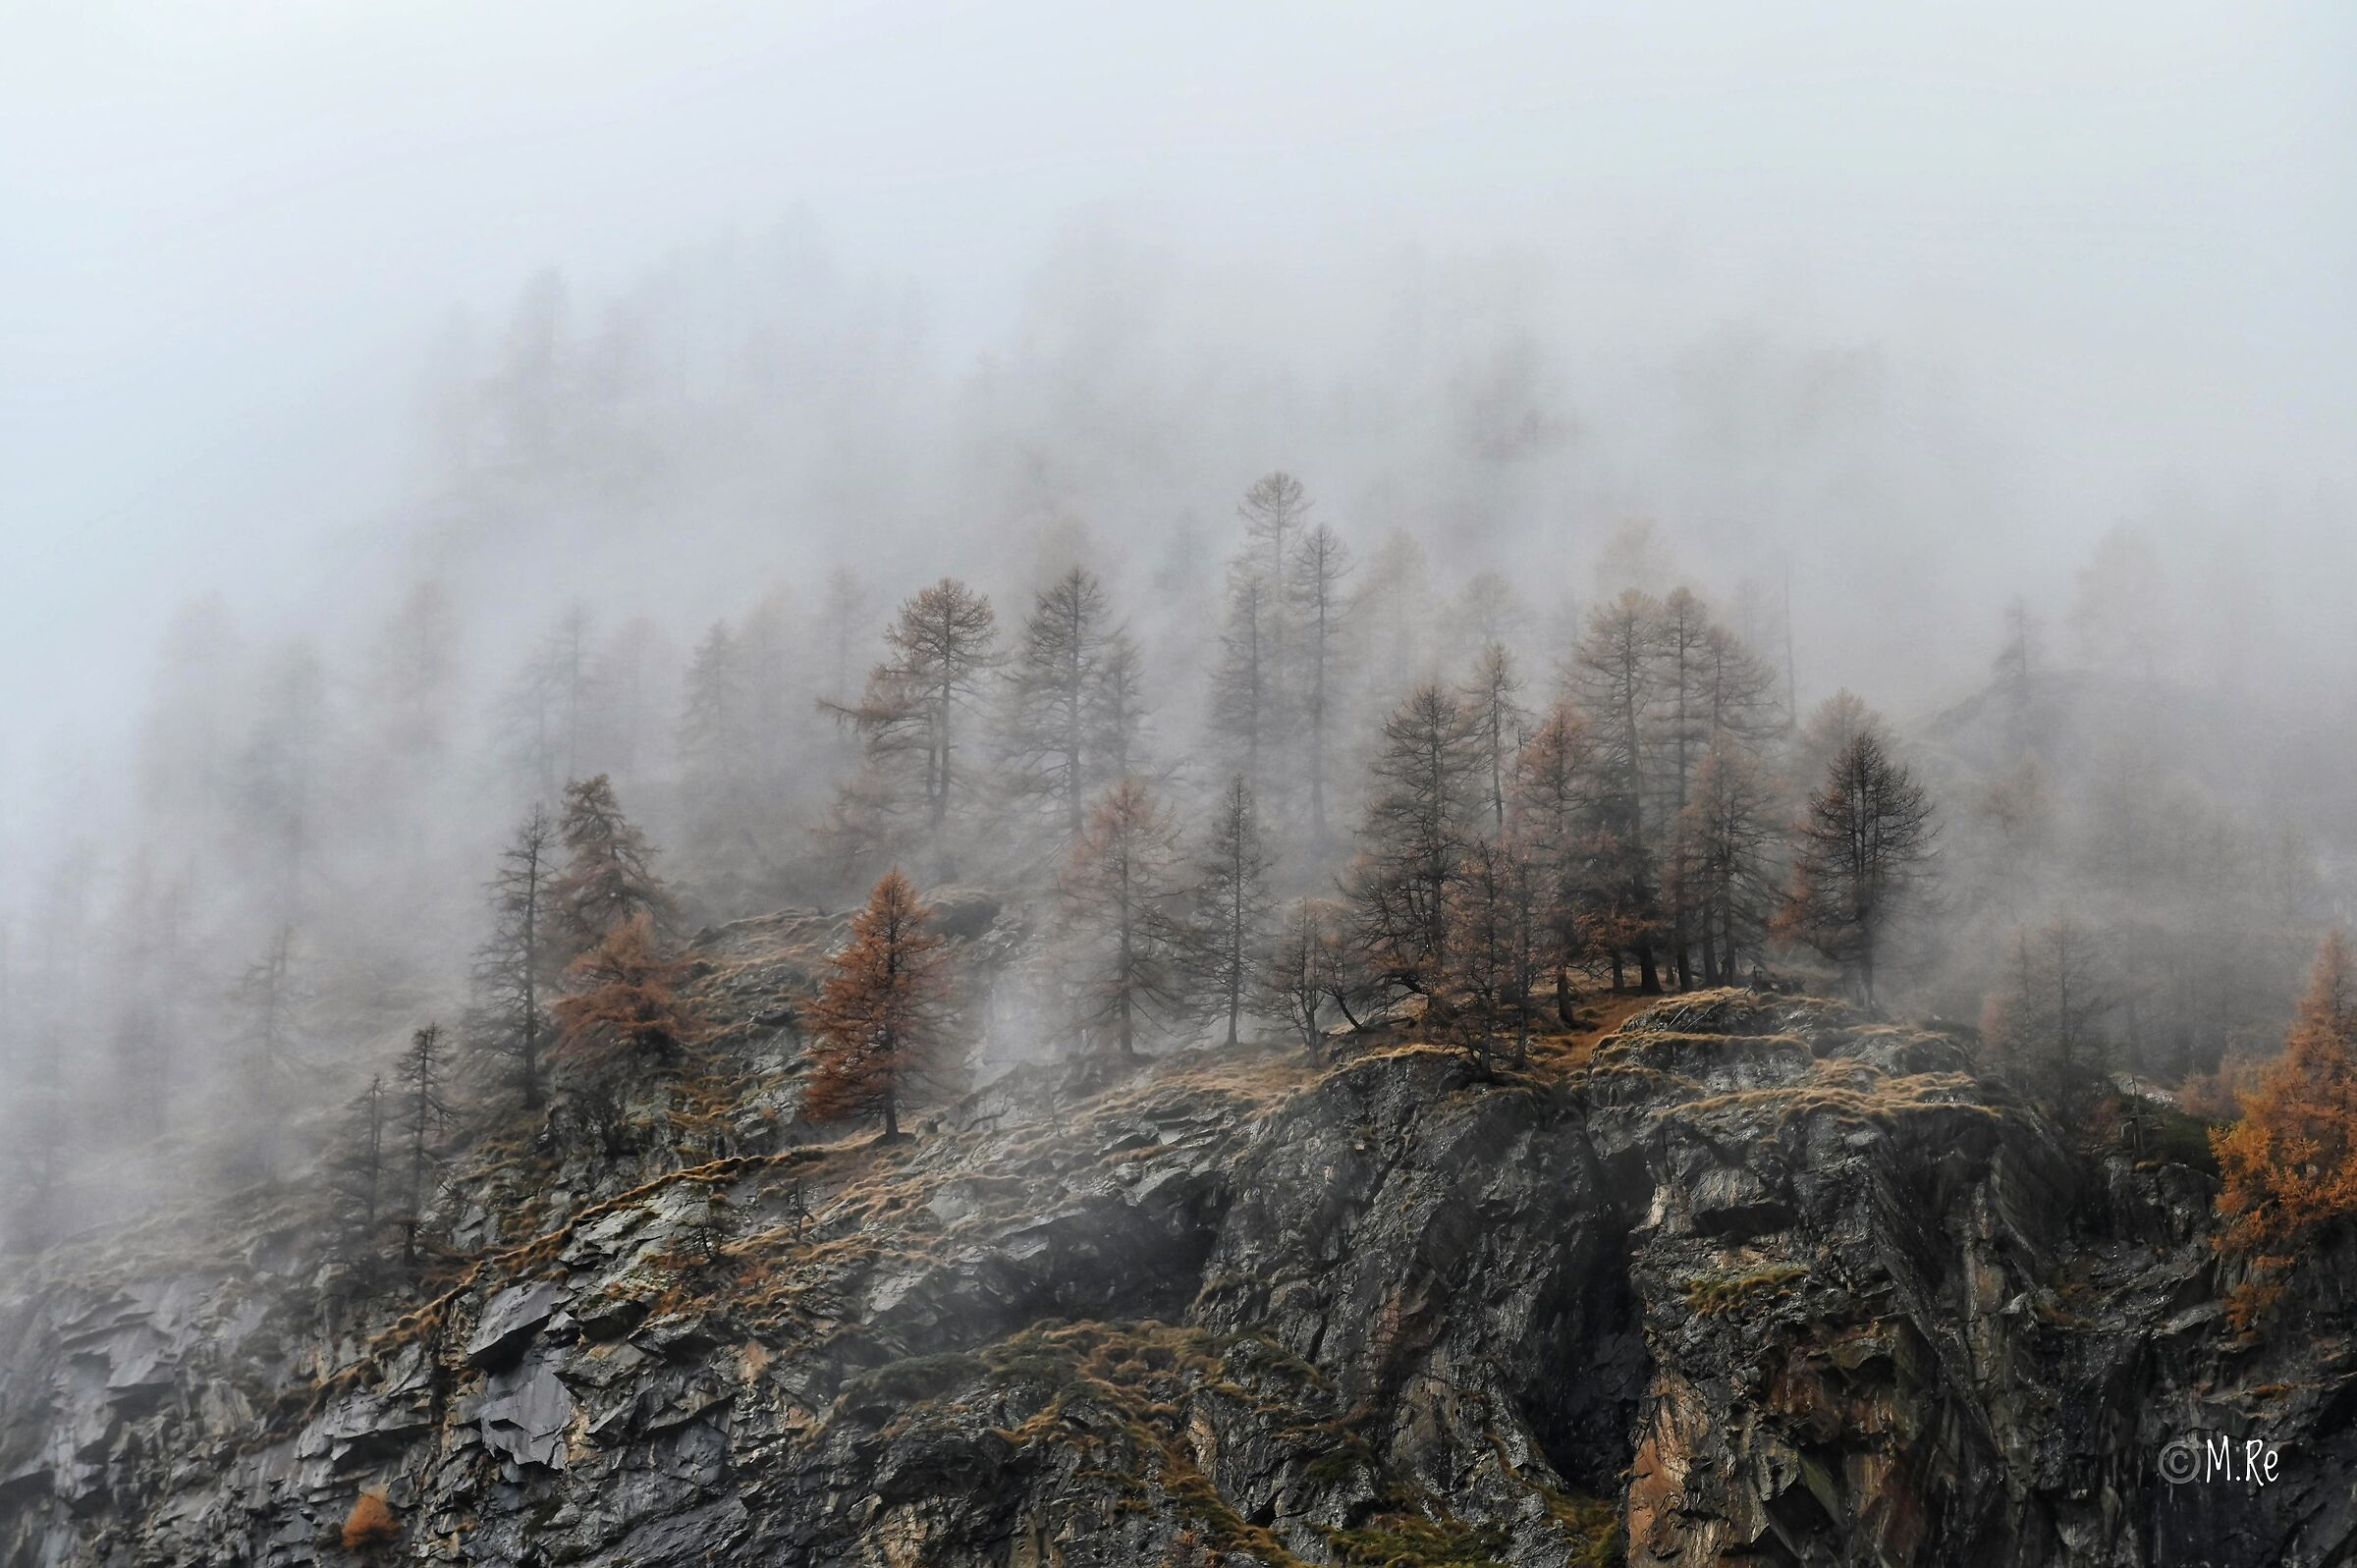 Fog in the mountains...